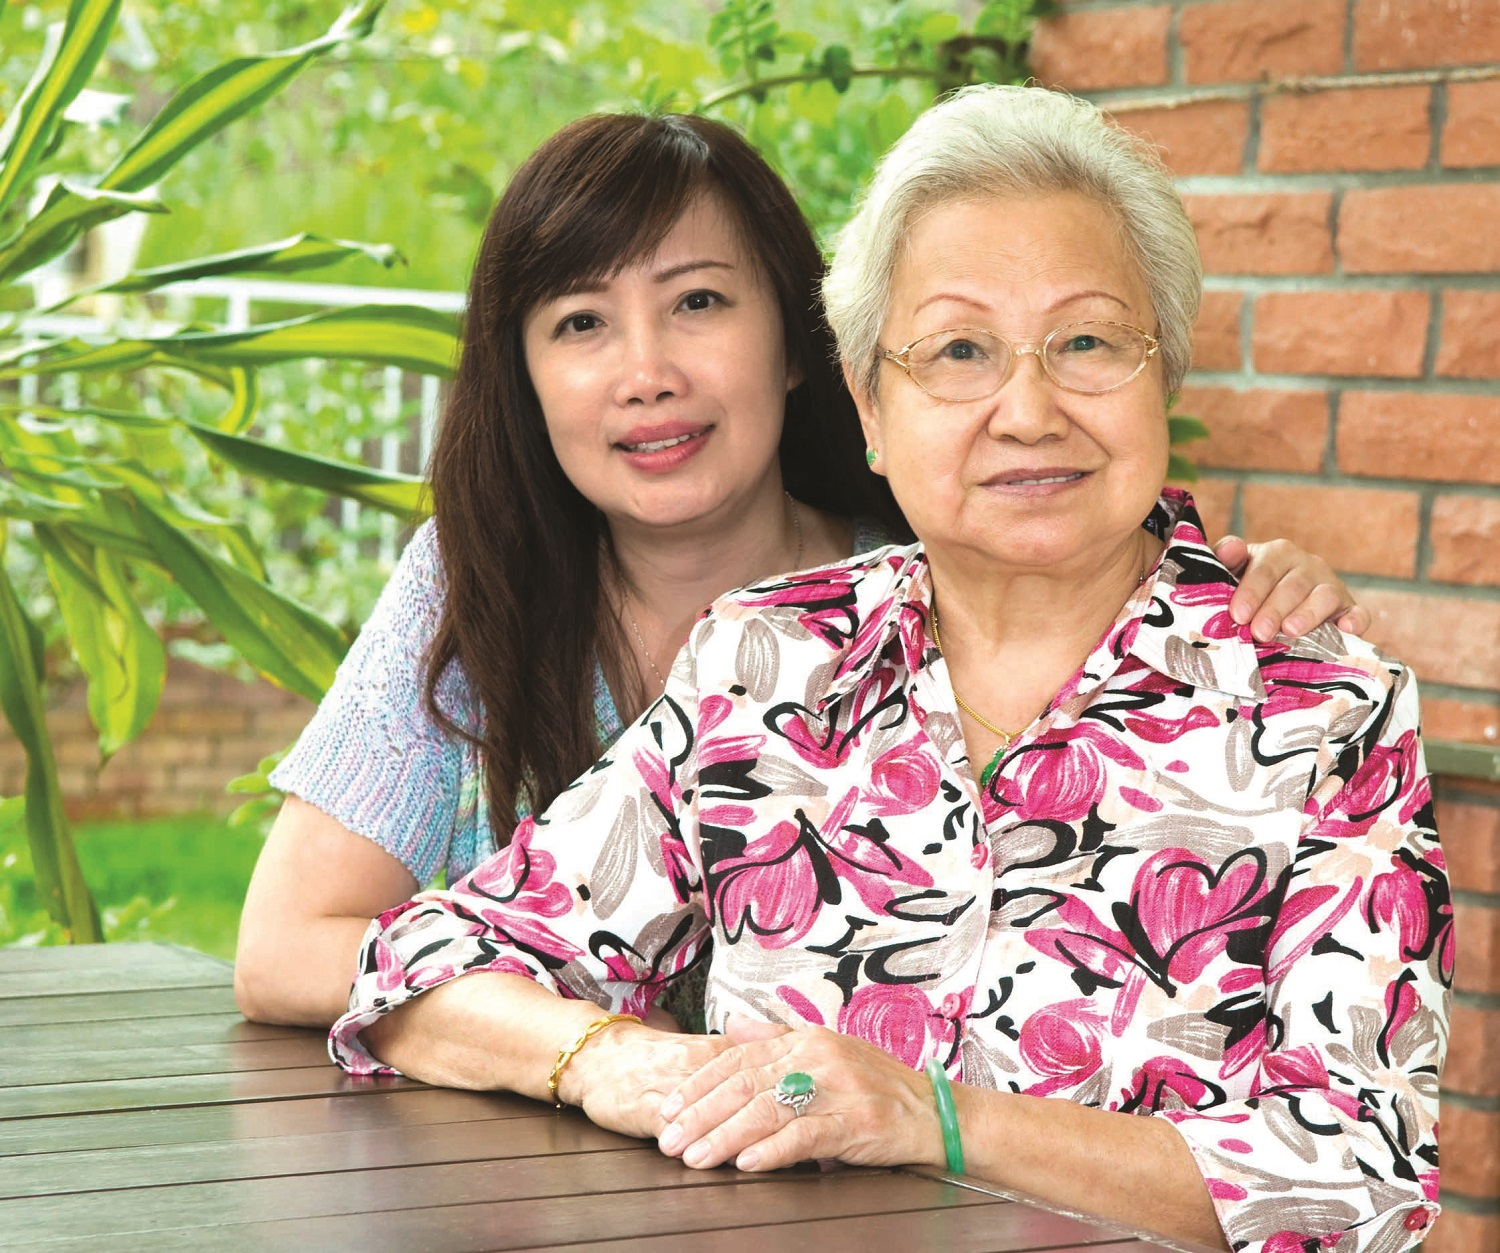 20206466 – elderly woman and her daughter